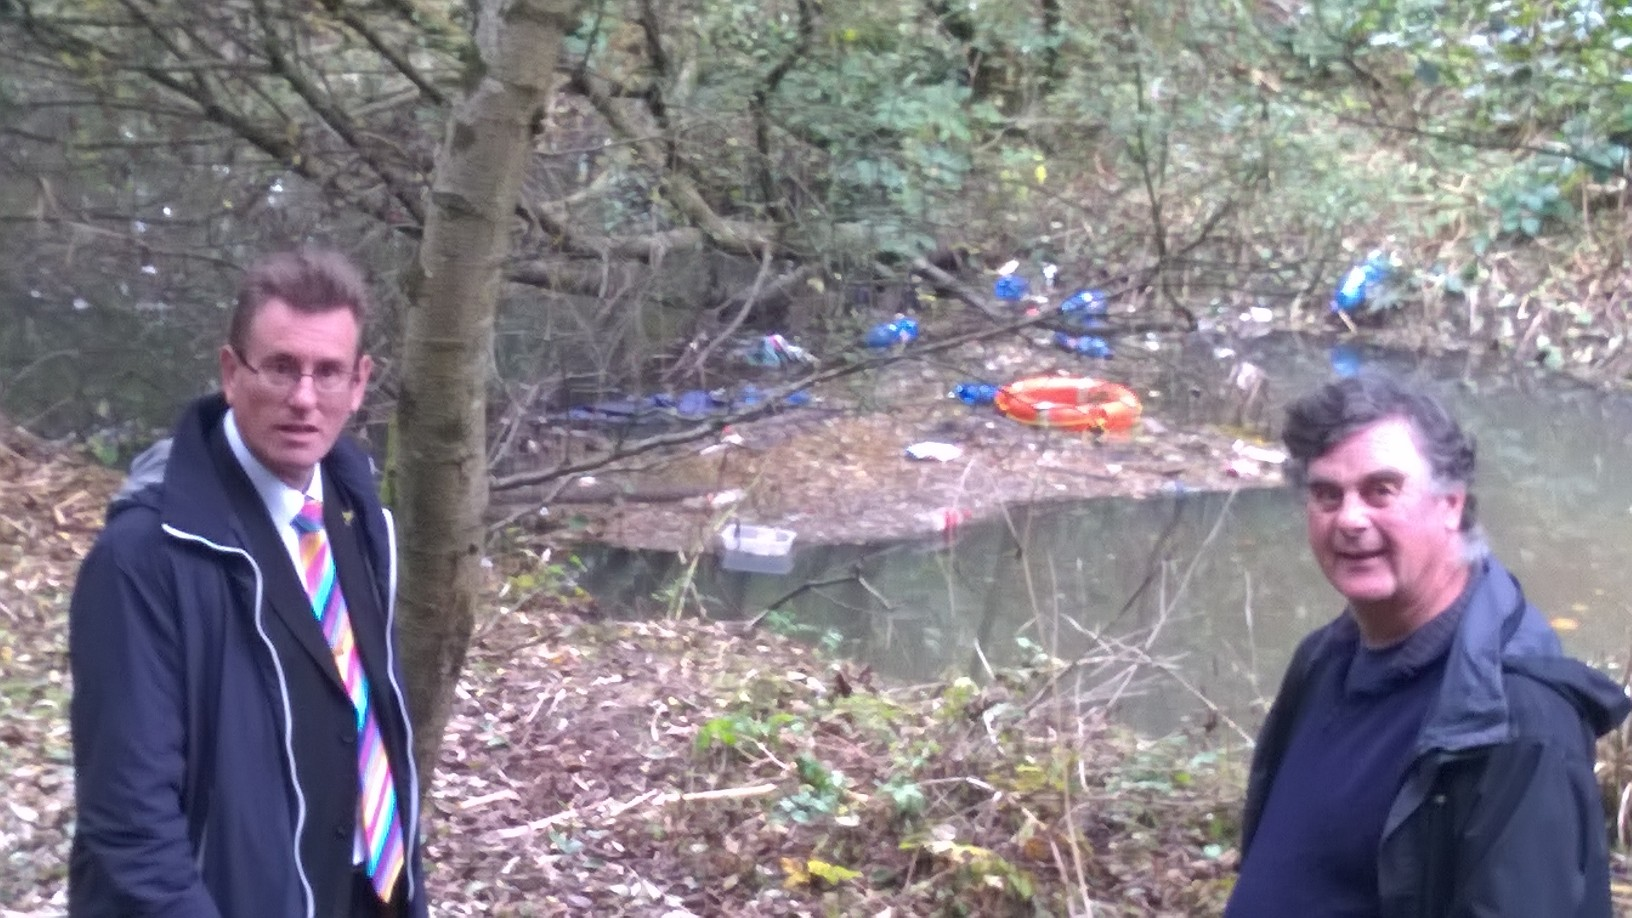 Assembly Member calls on Council to clean up fly-tipping around Fendrod Lake